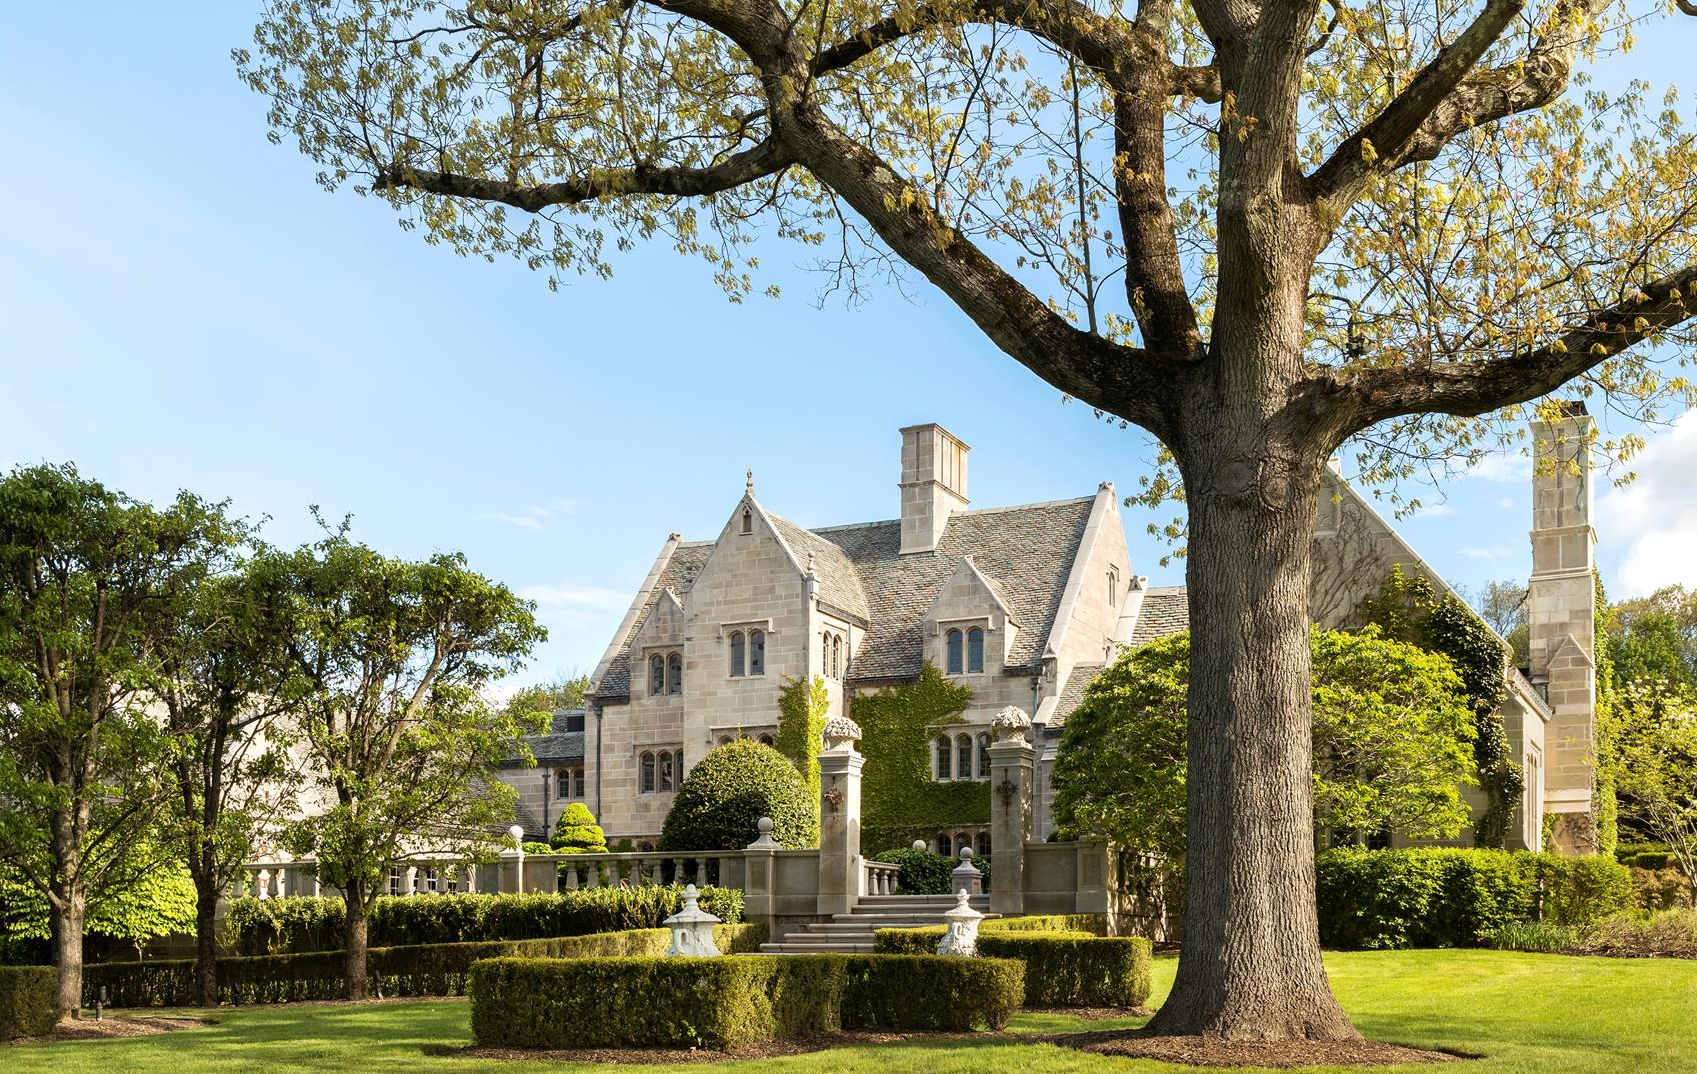 Featured Listing: Take a Stroll Through the Grounds of a Meticulous Greenwich Estate That Took 100 Artisans to Build